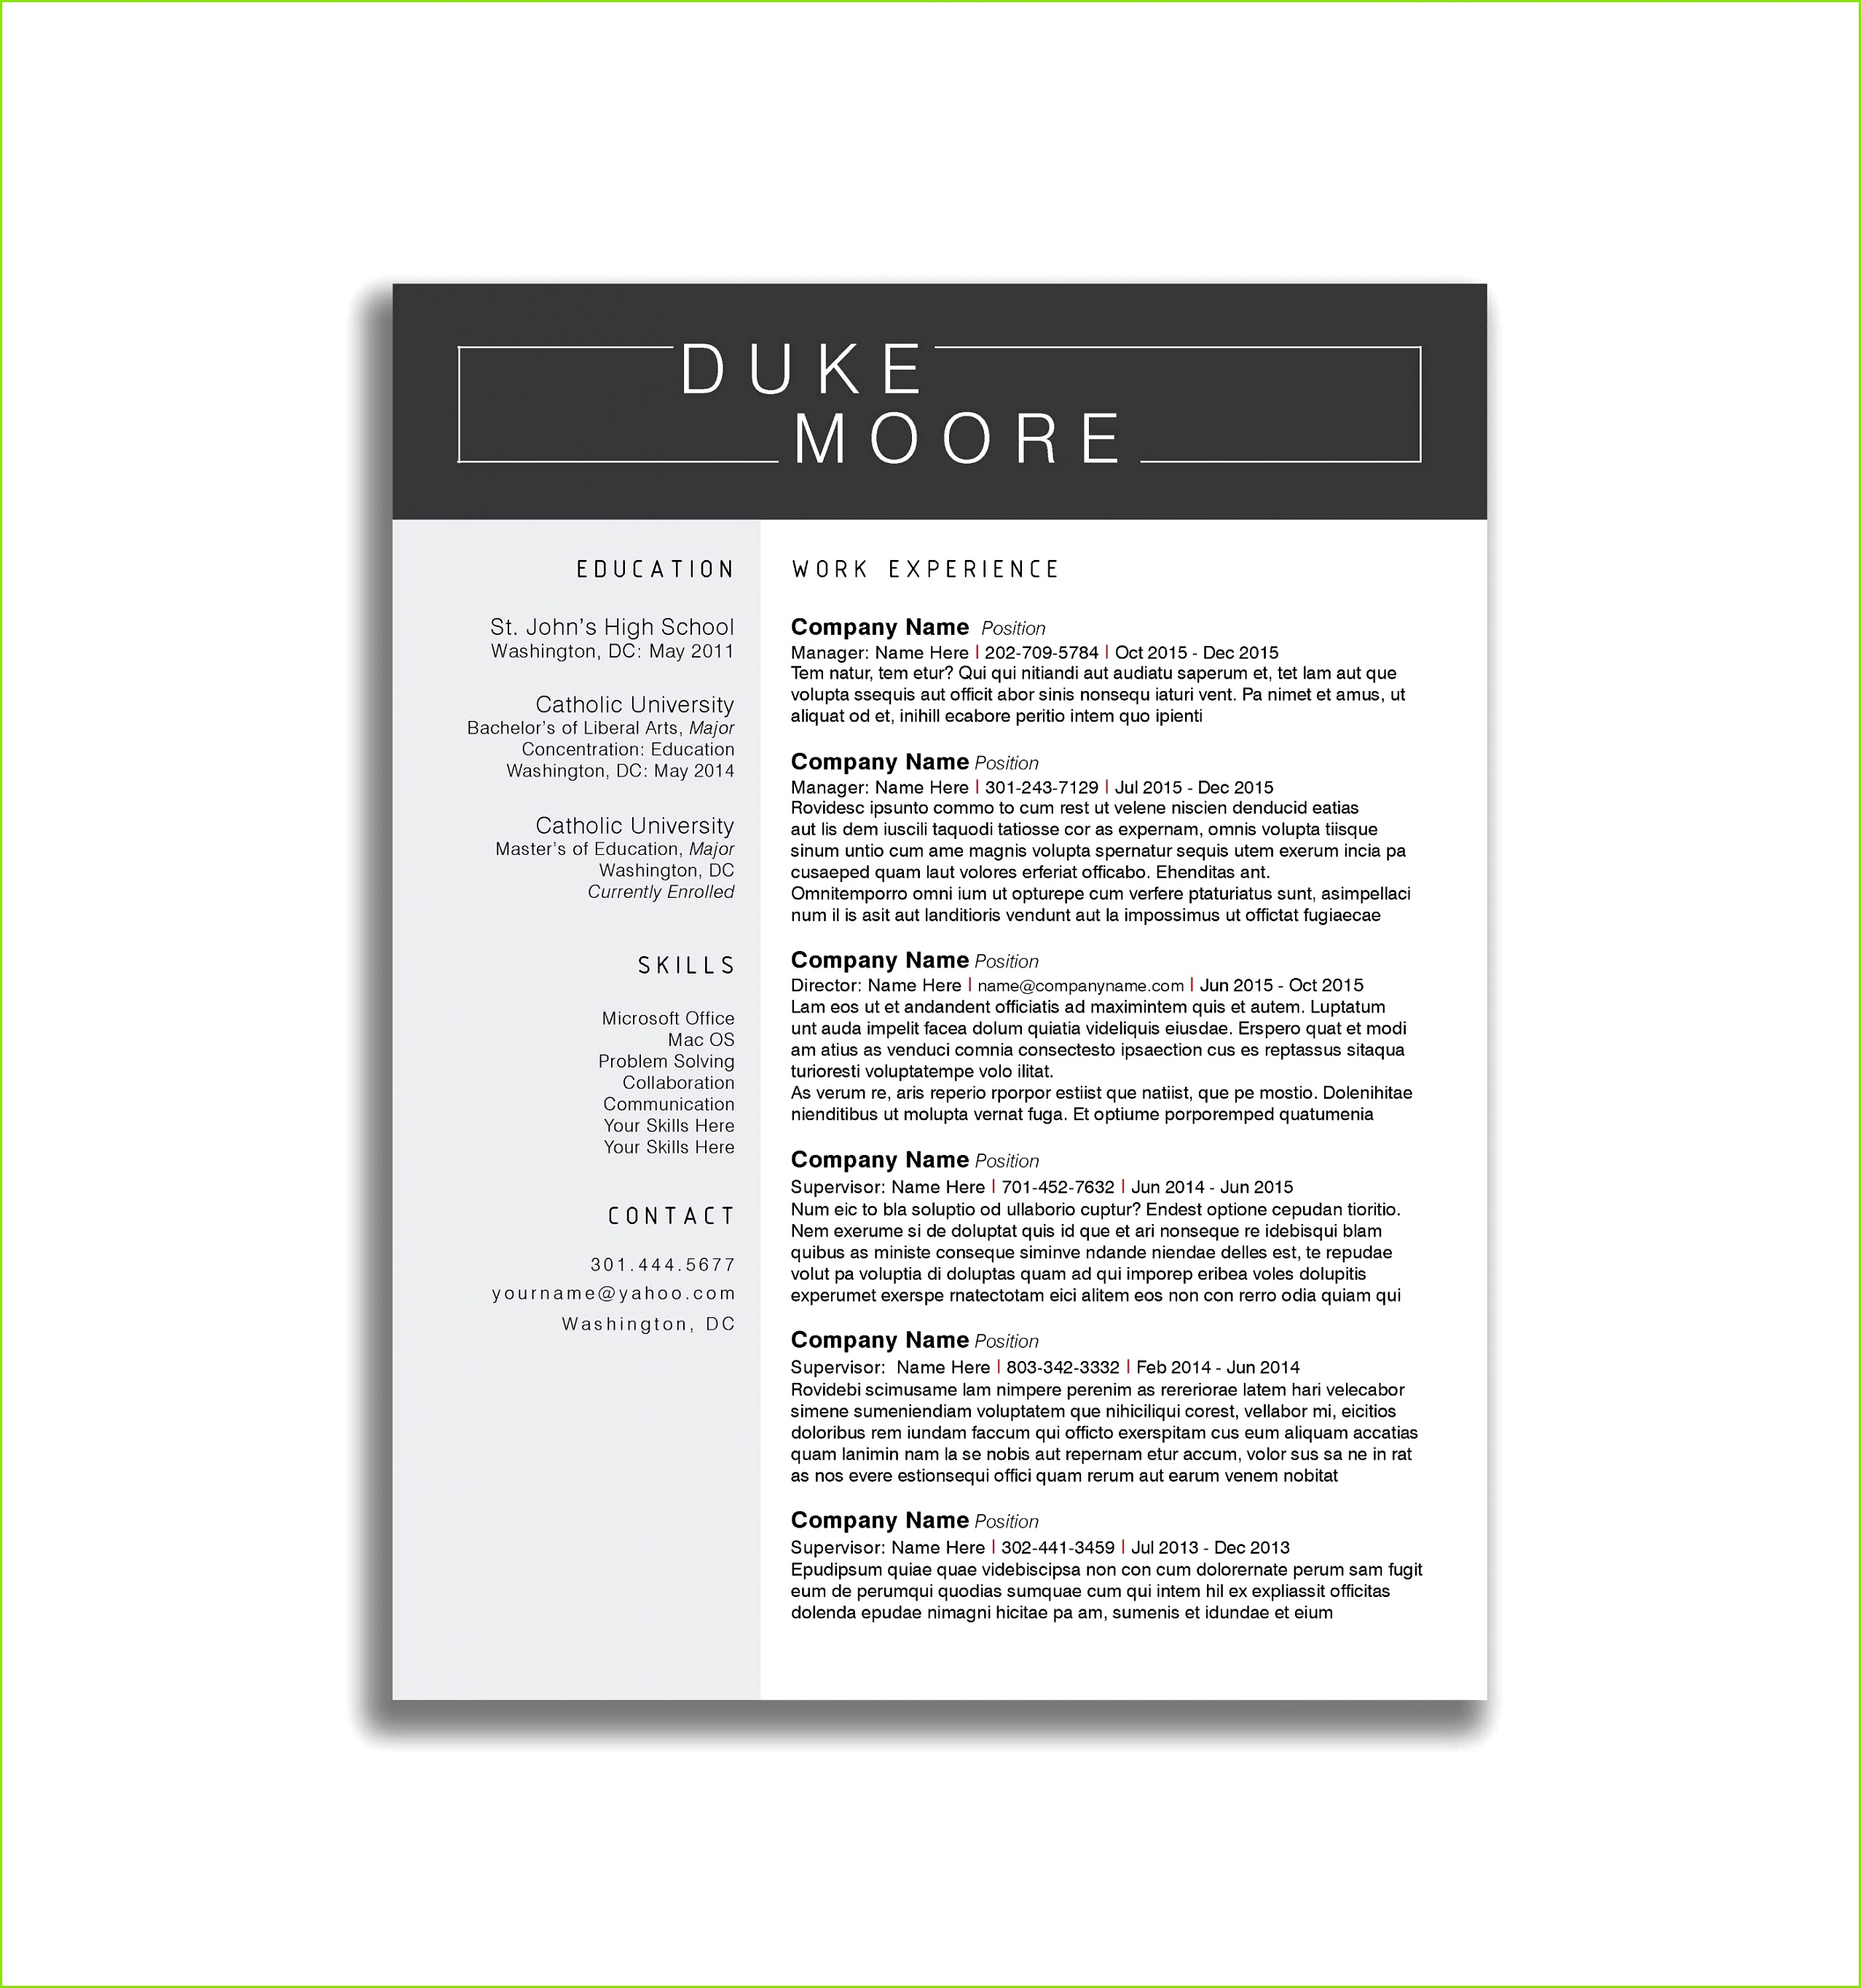 Sample Resume Templates Free Download Reference Resume Cv Docx Inspiration Curriculum Vitae Simple Francais